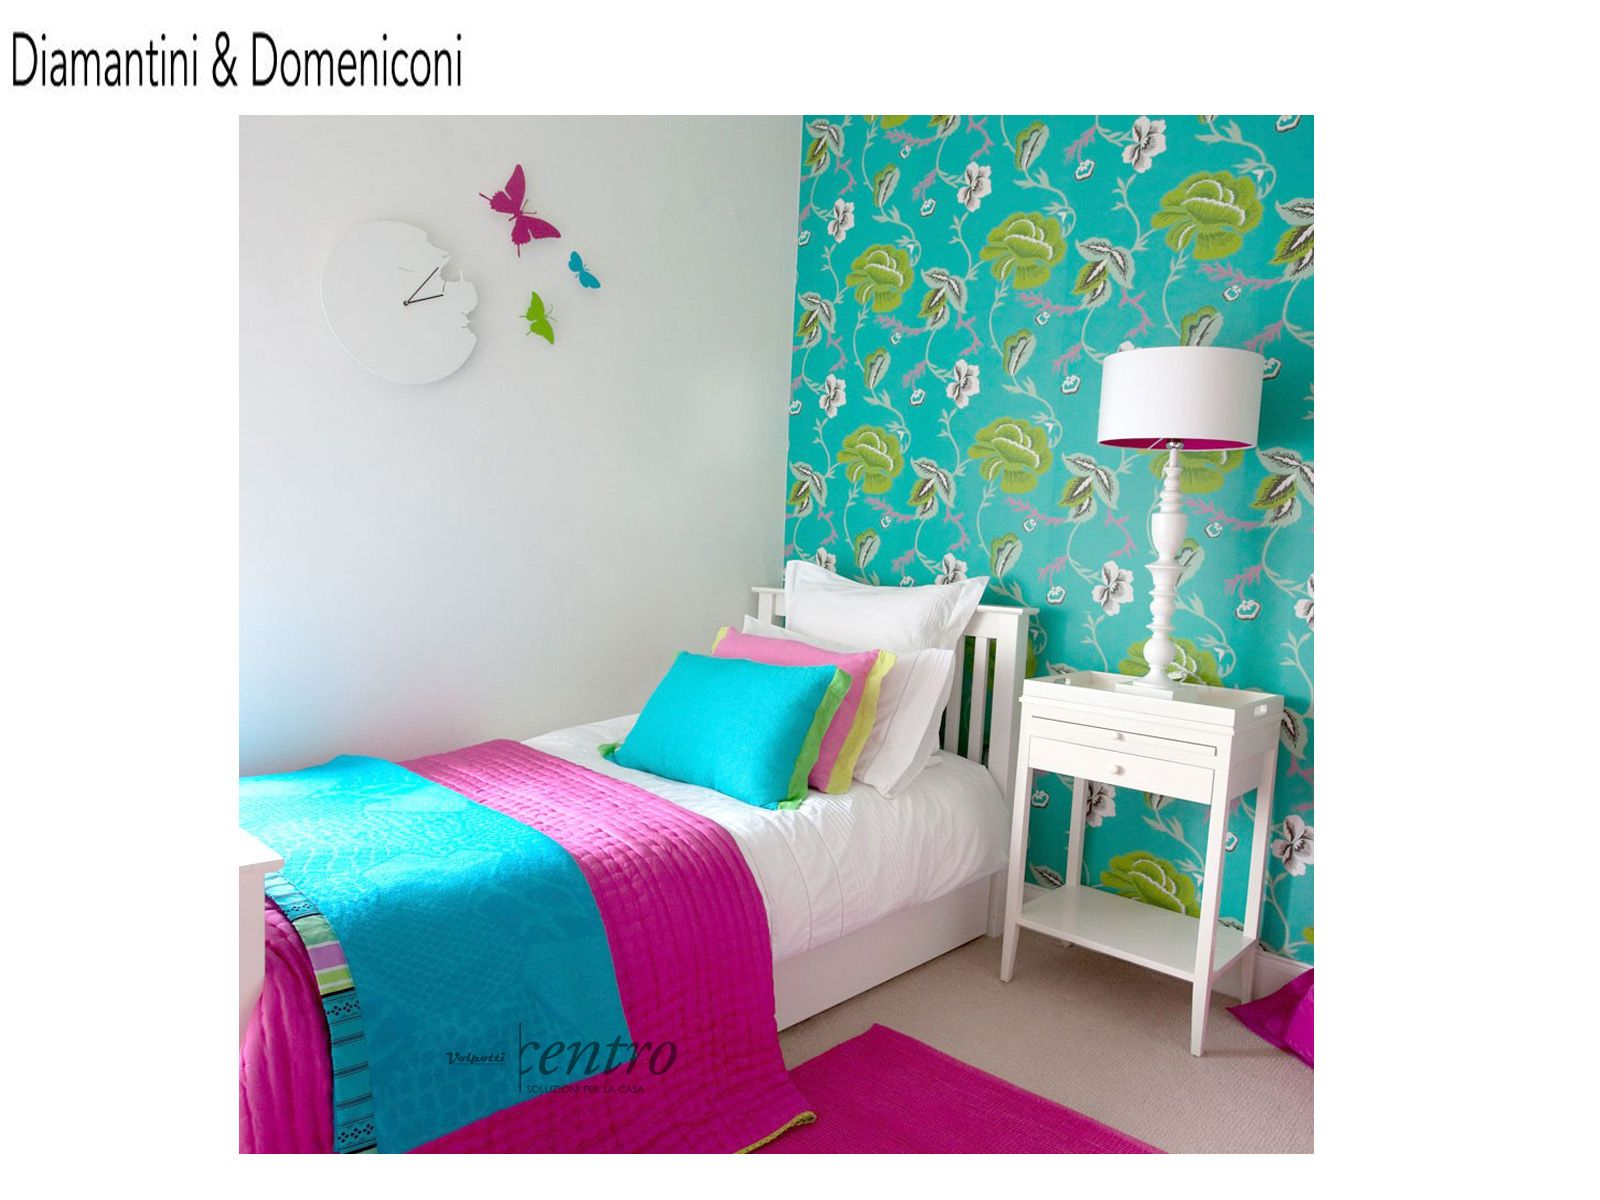 diamantini domeniconi butterfly orologio con 3 farfalle. Black Bedroom Furniture Sets. Home Design Ideas